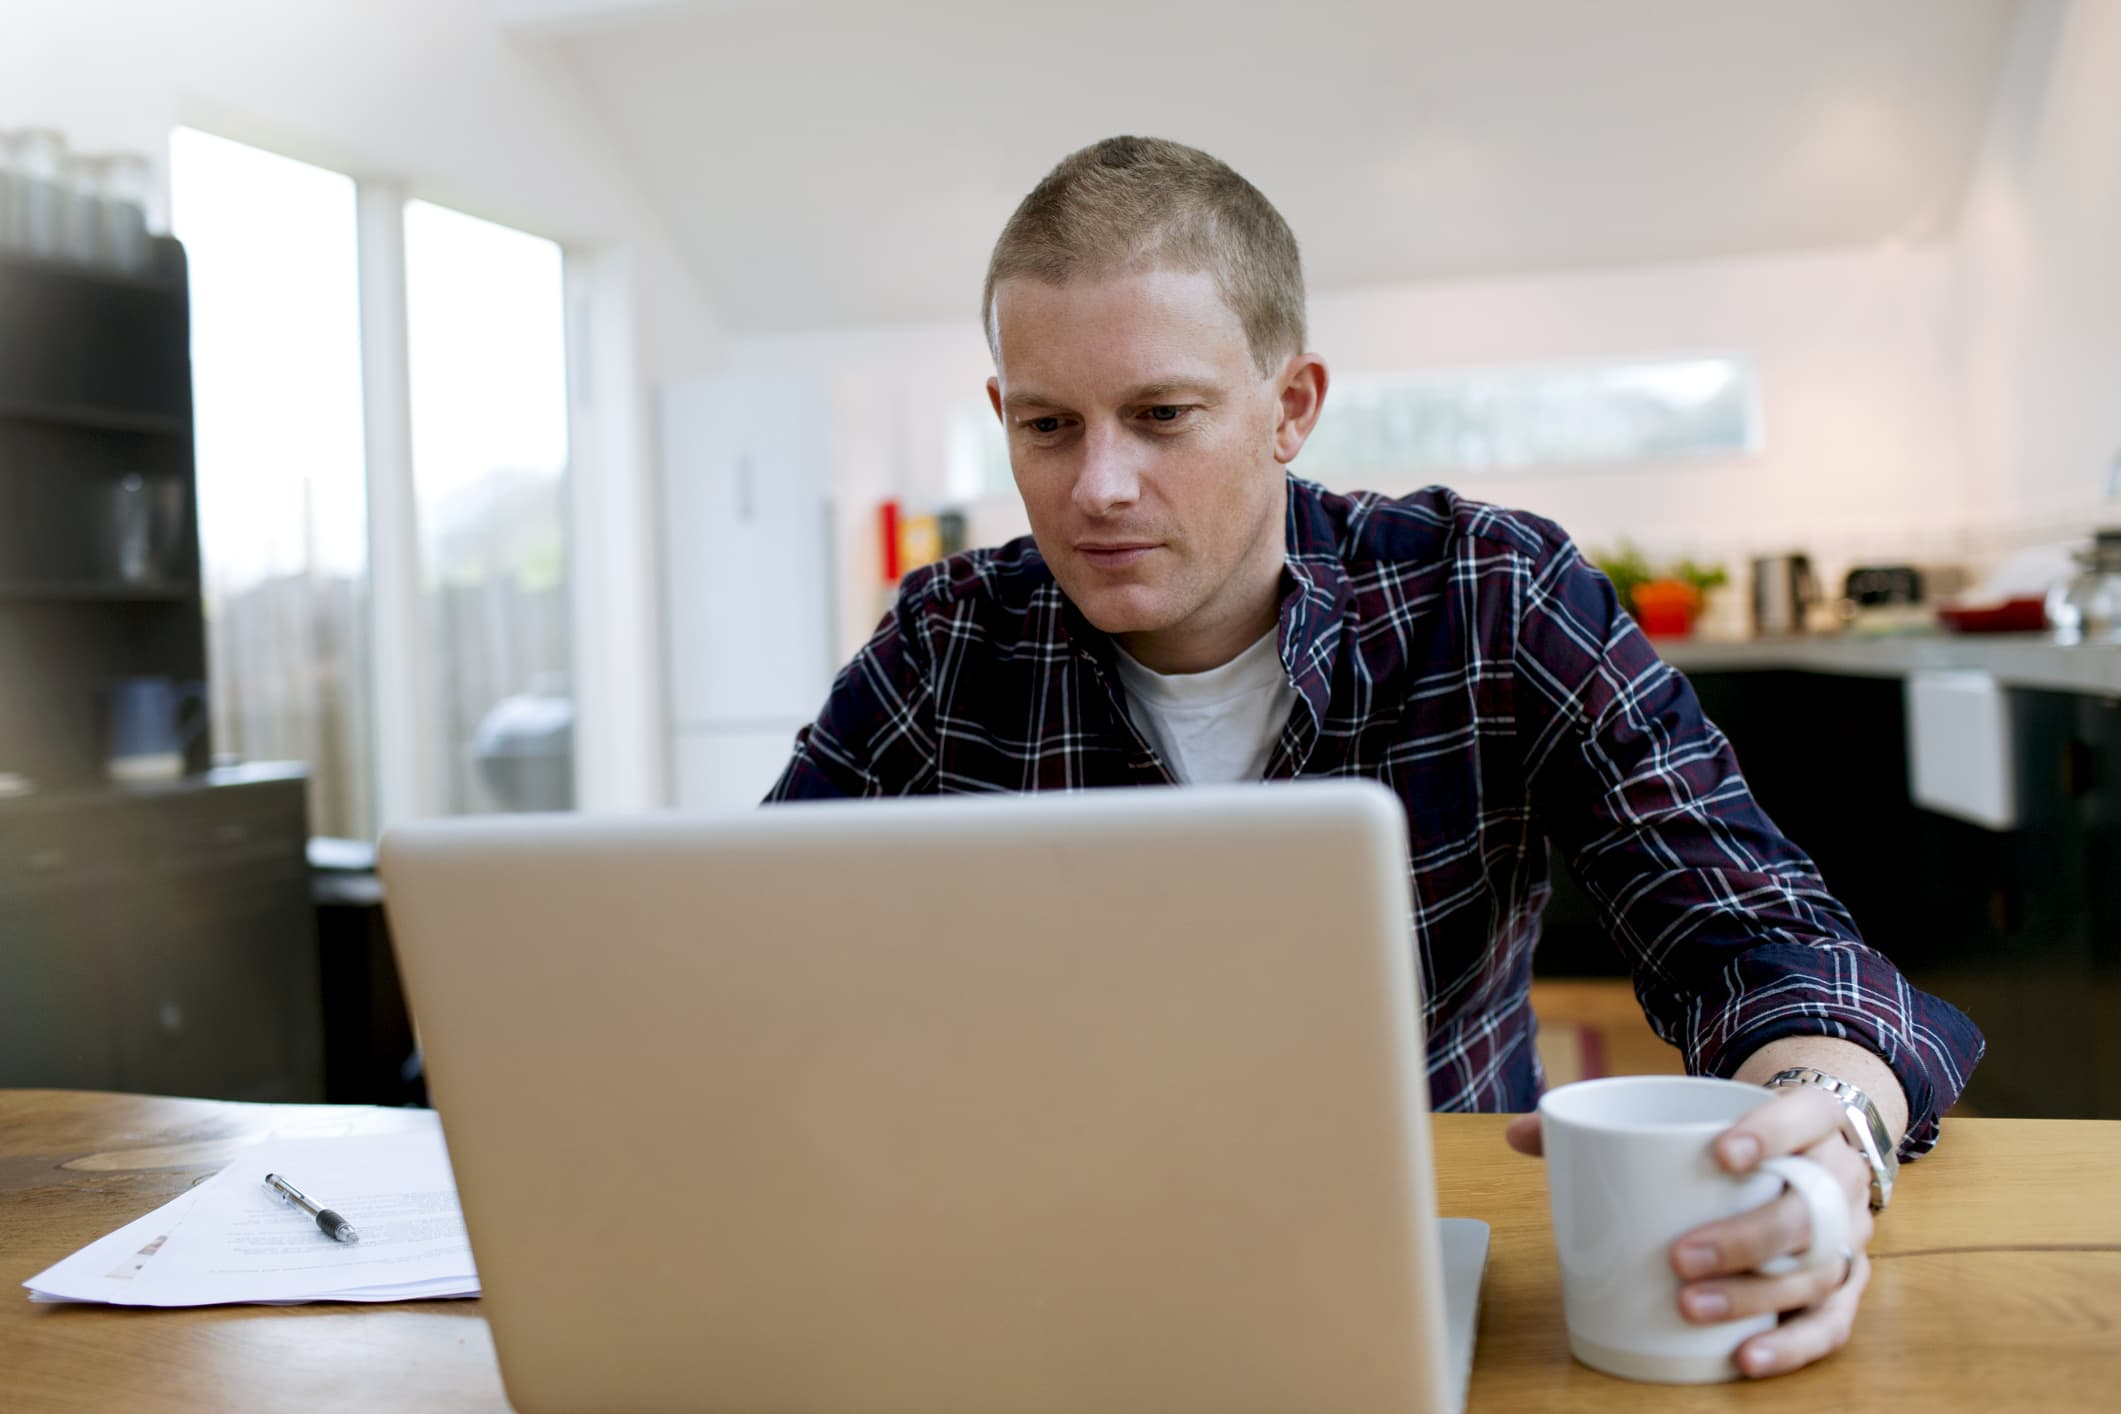 Fast growing remote jobs that pay up to $100,000